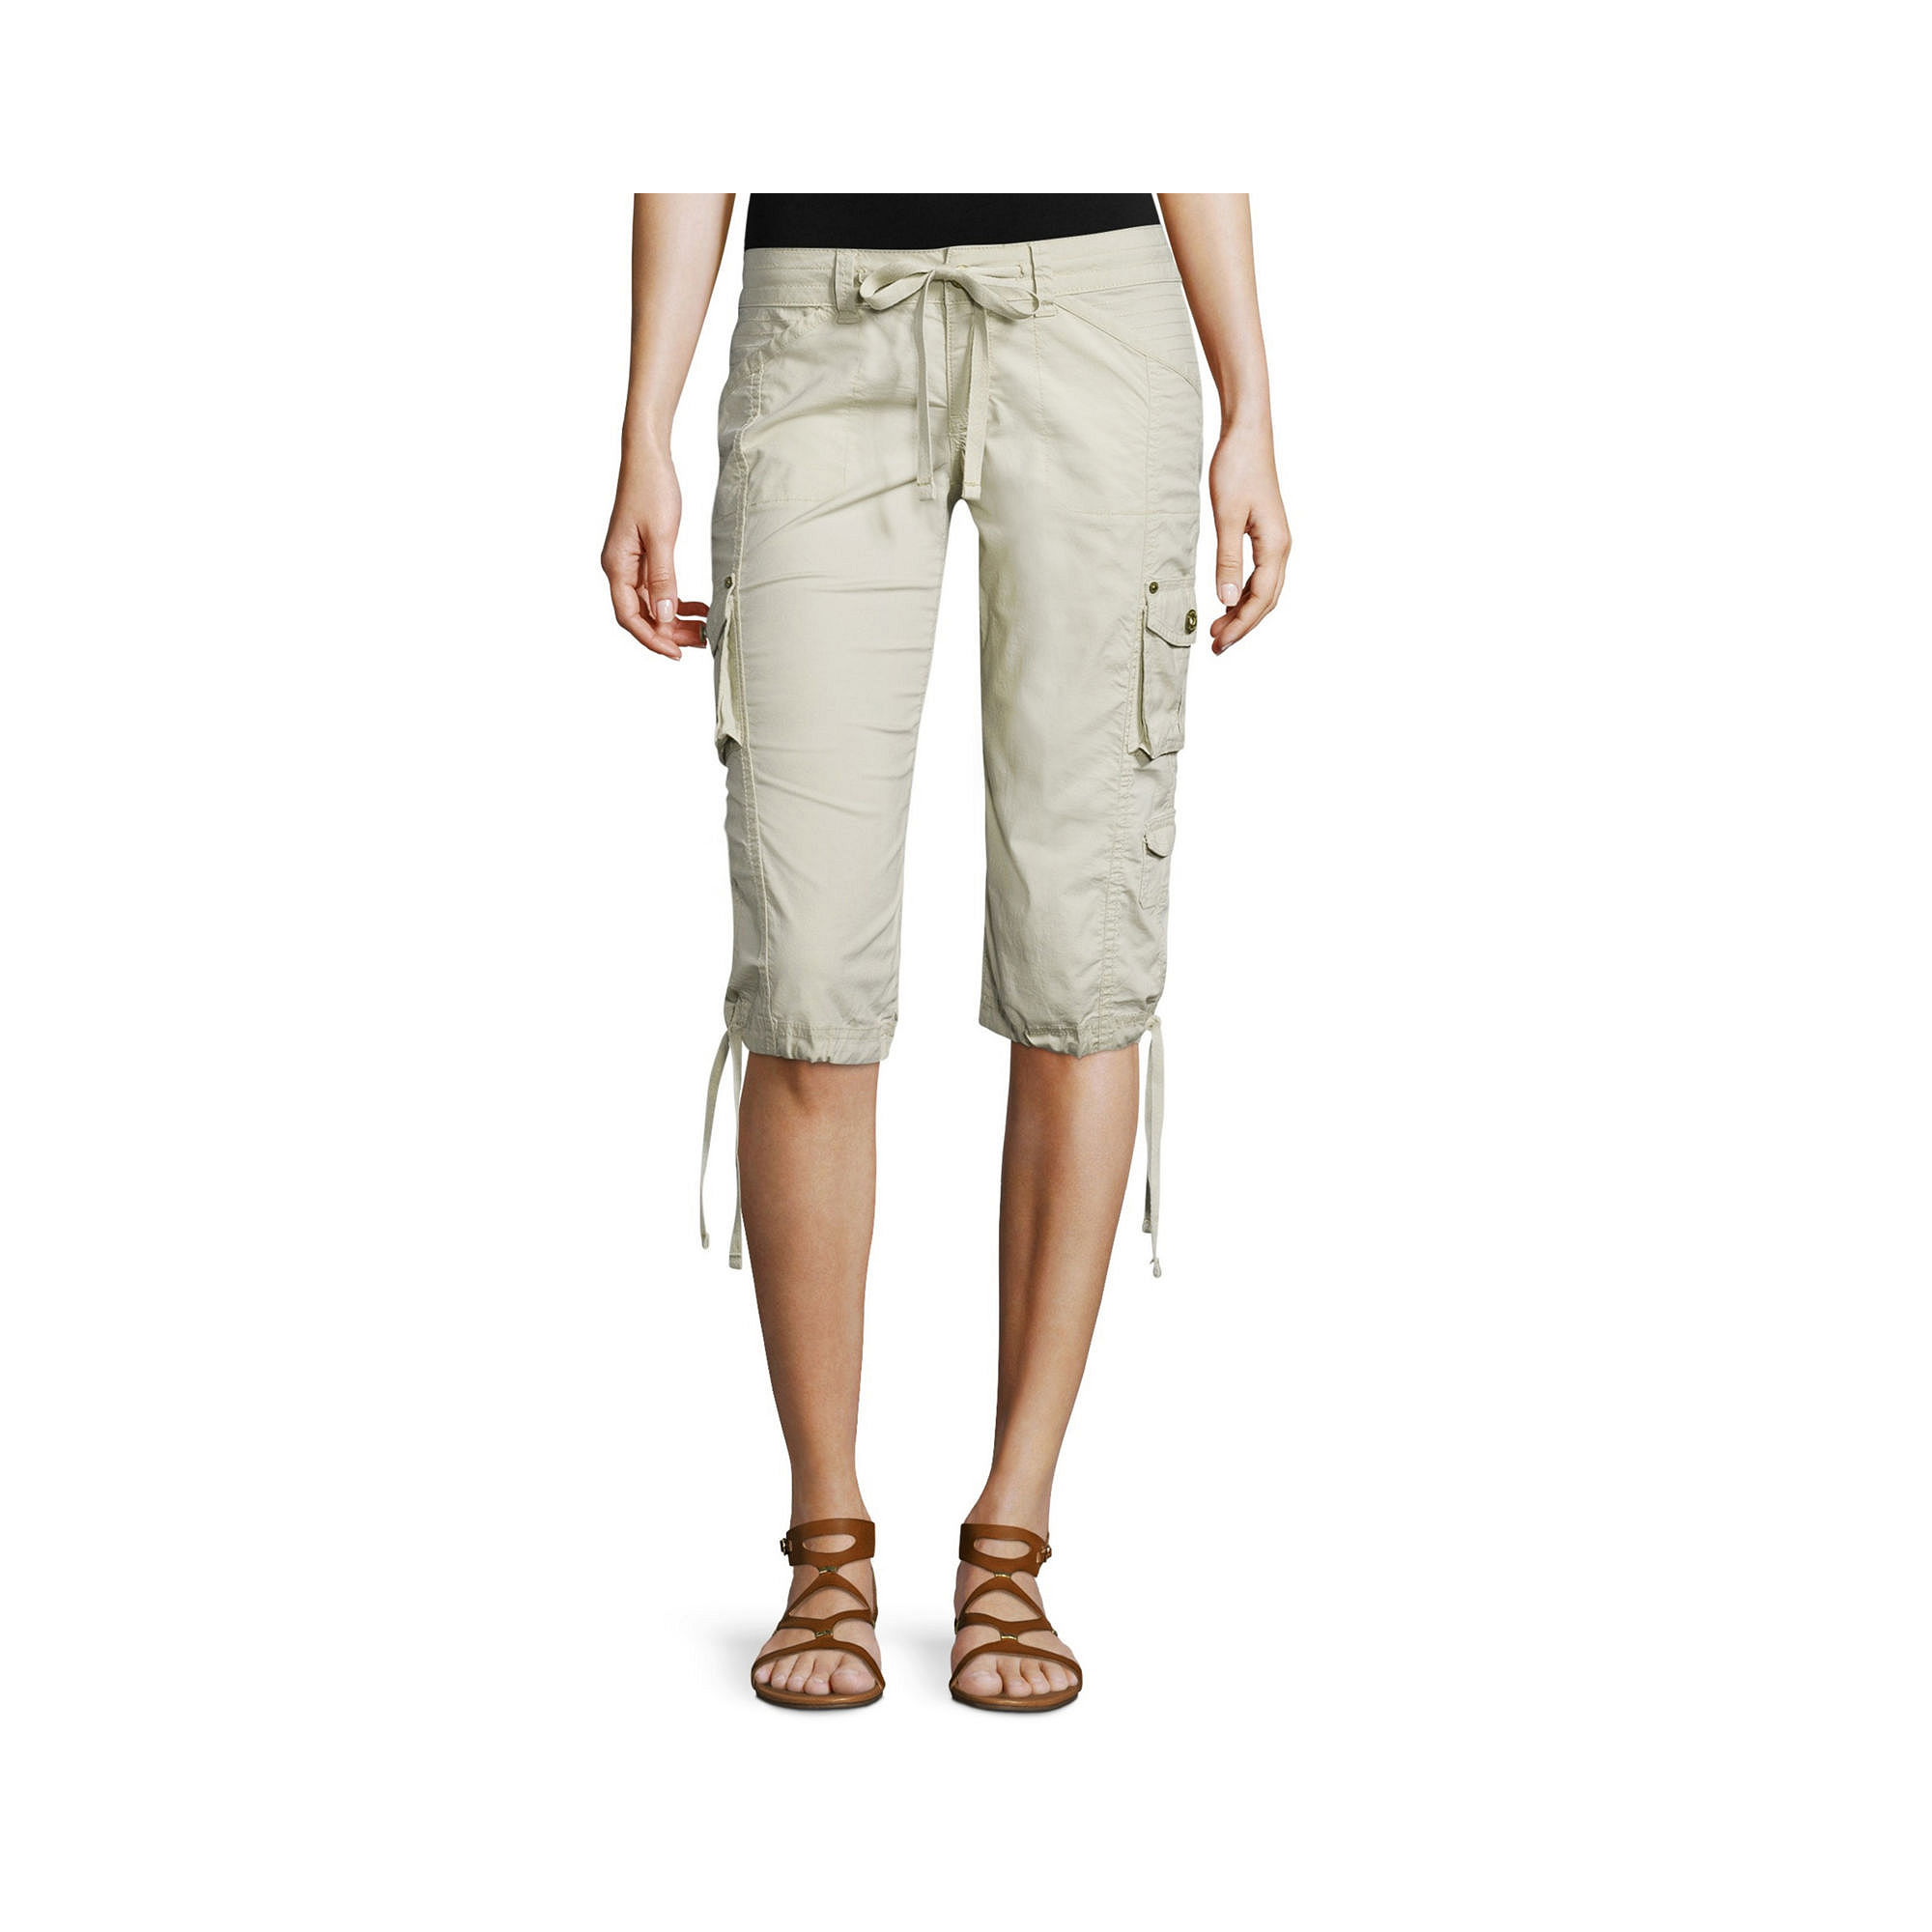 Free shipping on cropped & capri pants for women a fefdinterested.gq Shop by rise, material, size and more from the best brands. Free shipping & returns.